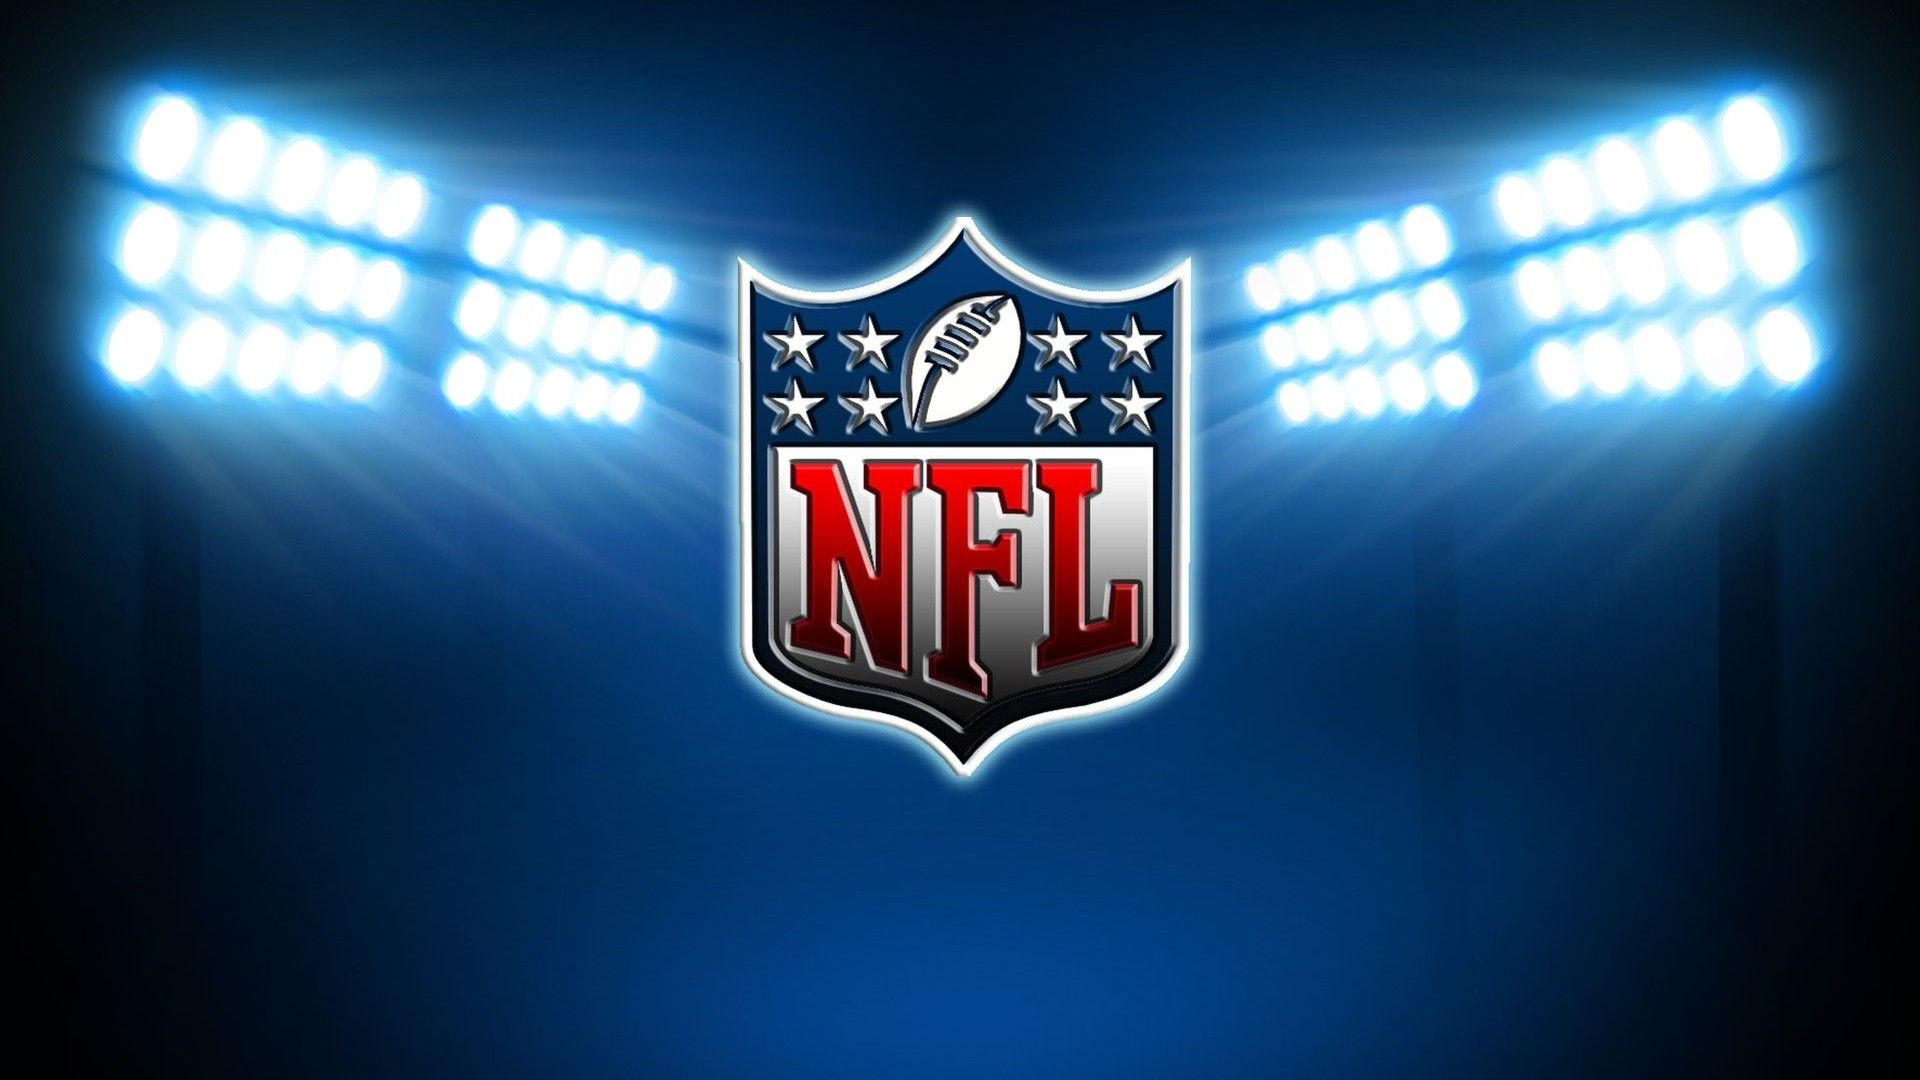 Nfl Wallpapers Nfl Football Wallpaper Nfl Season Nfl